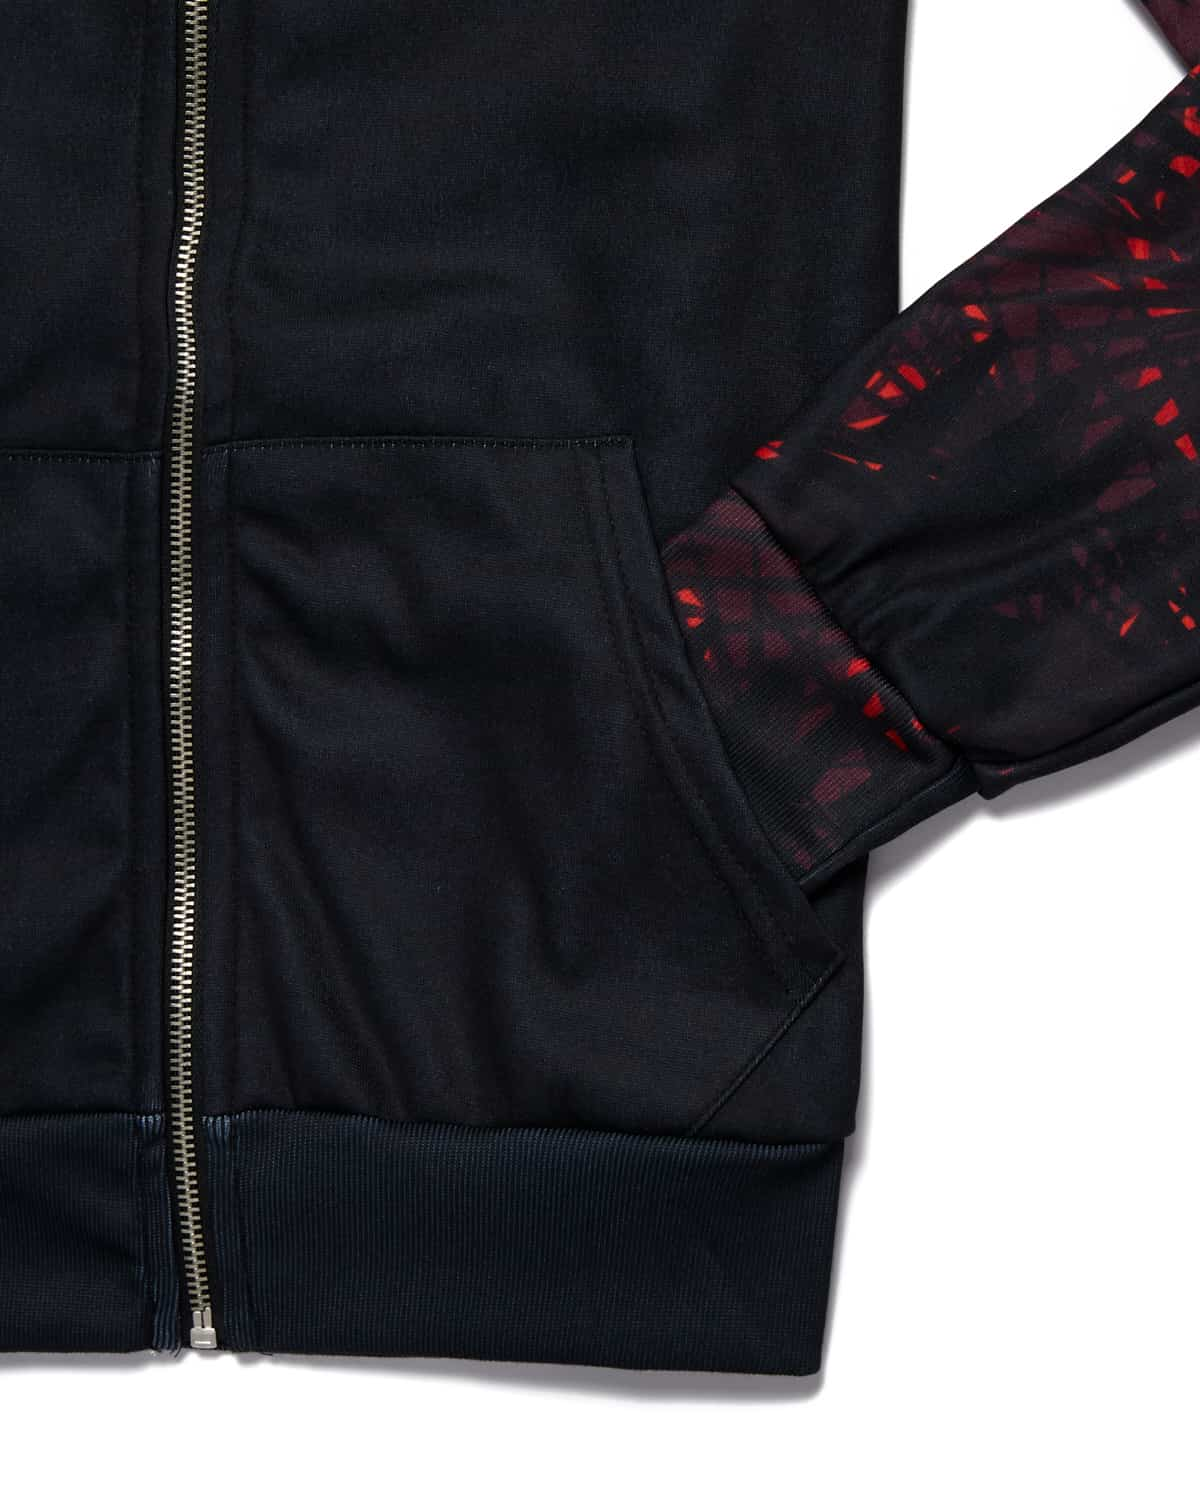 Lost Lands 'Foliage' Lineup Full-Zip Hoodie - Black/Red